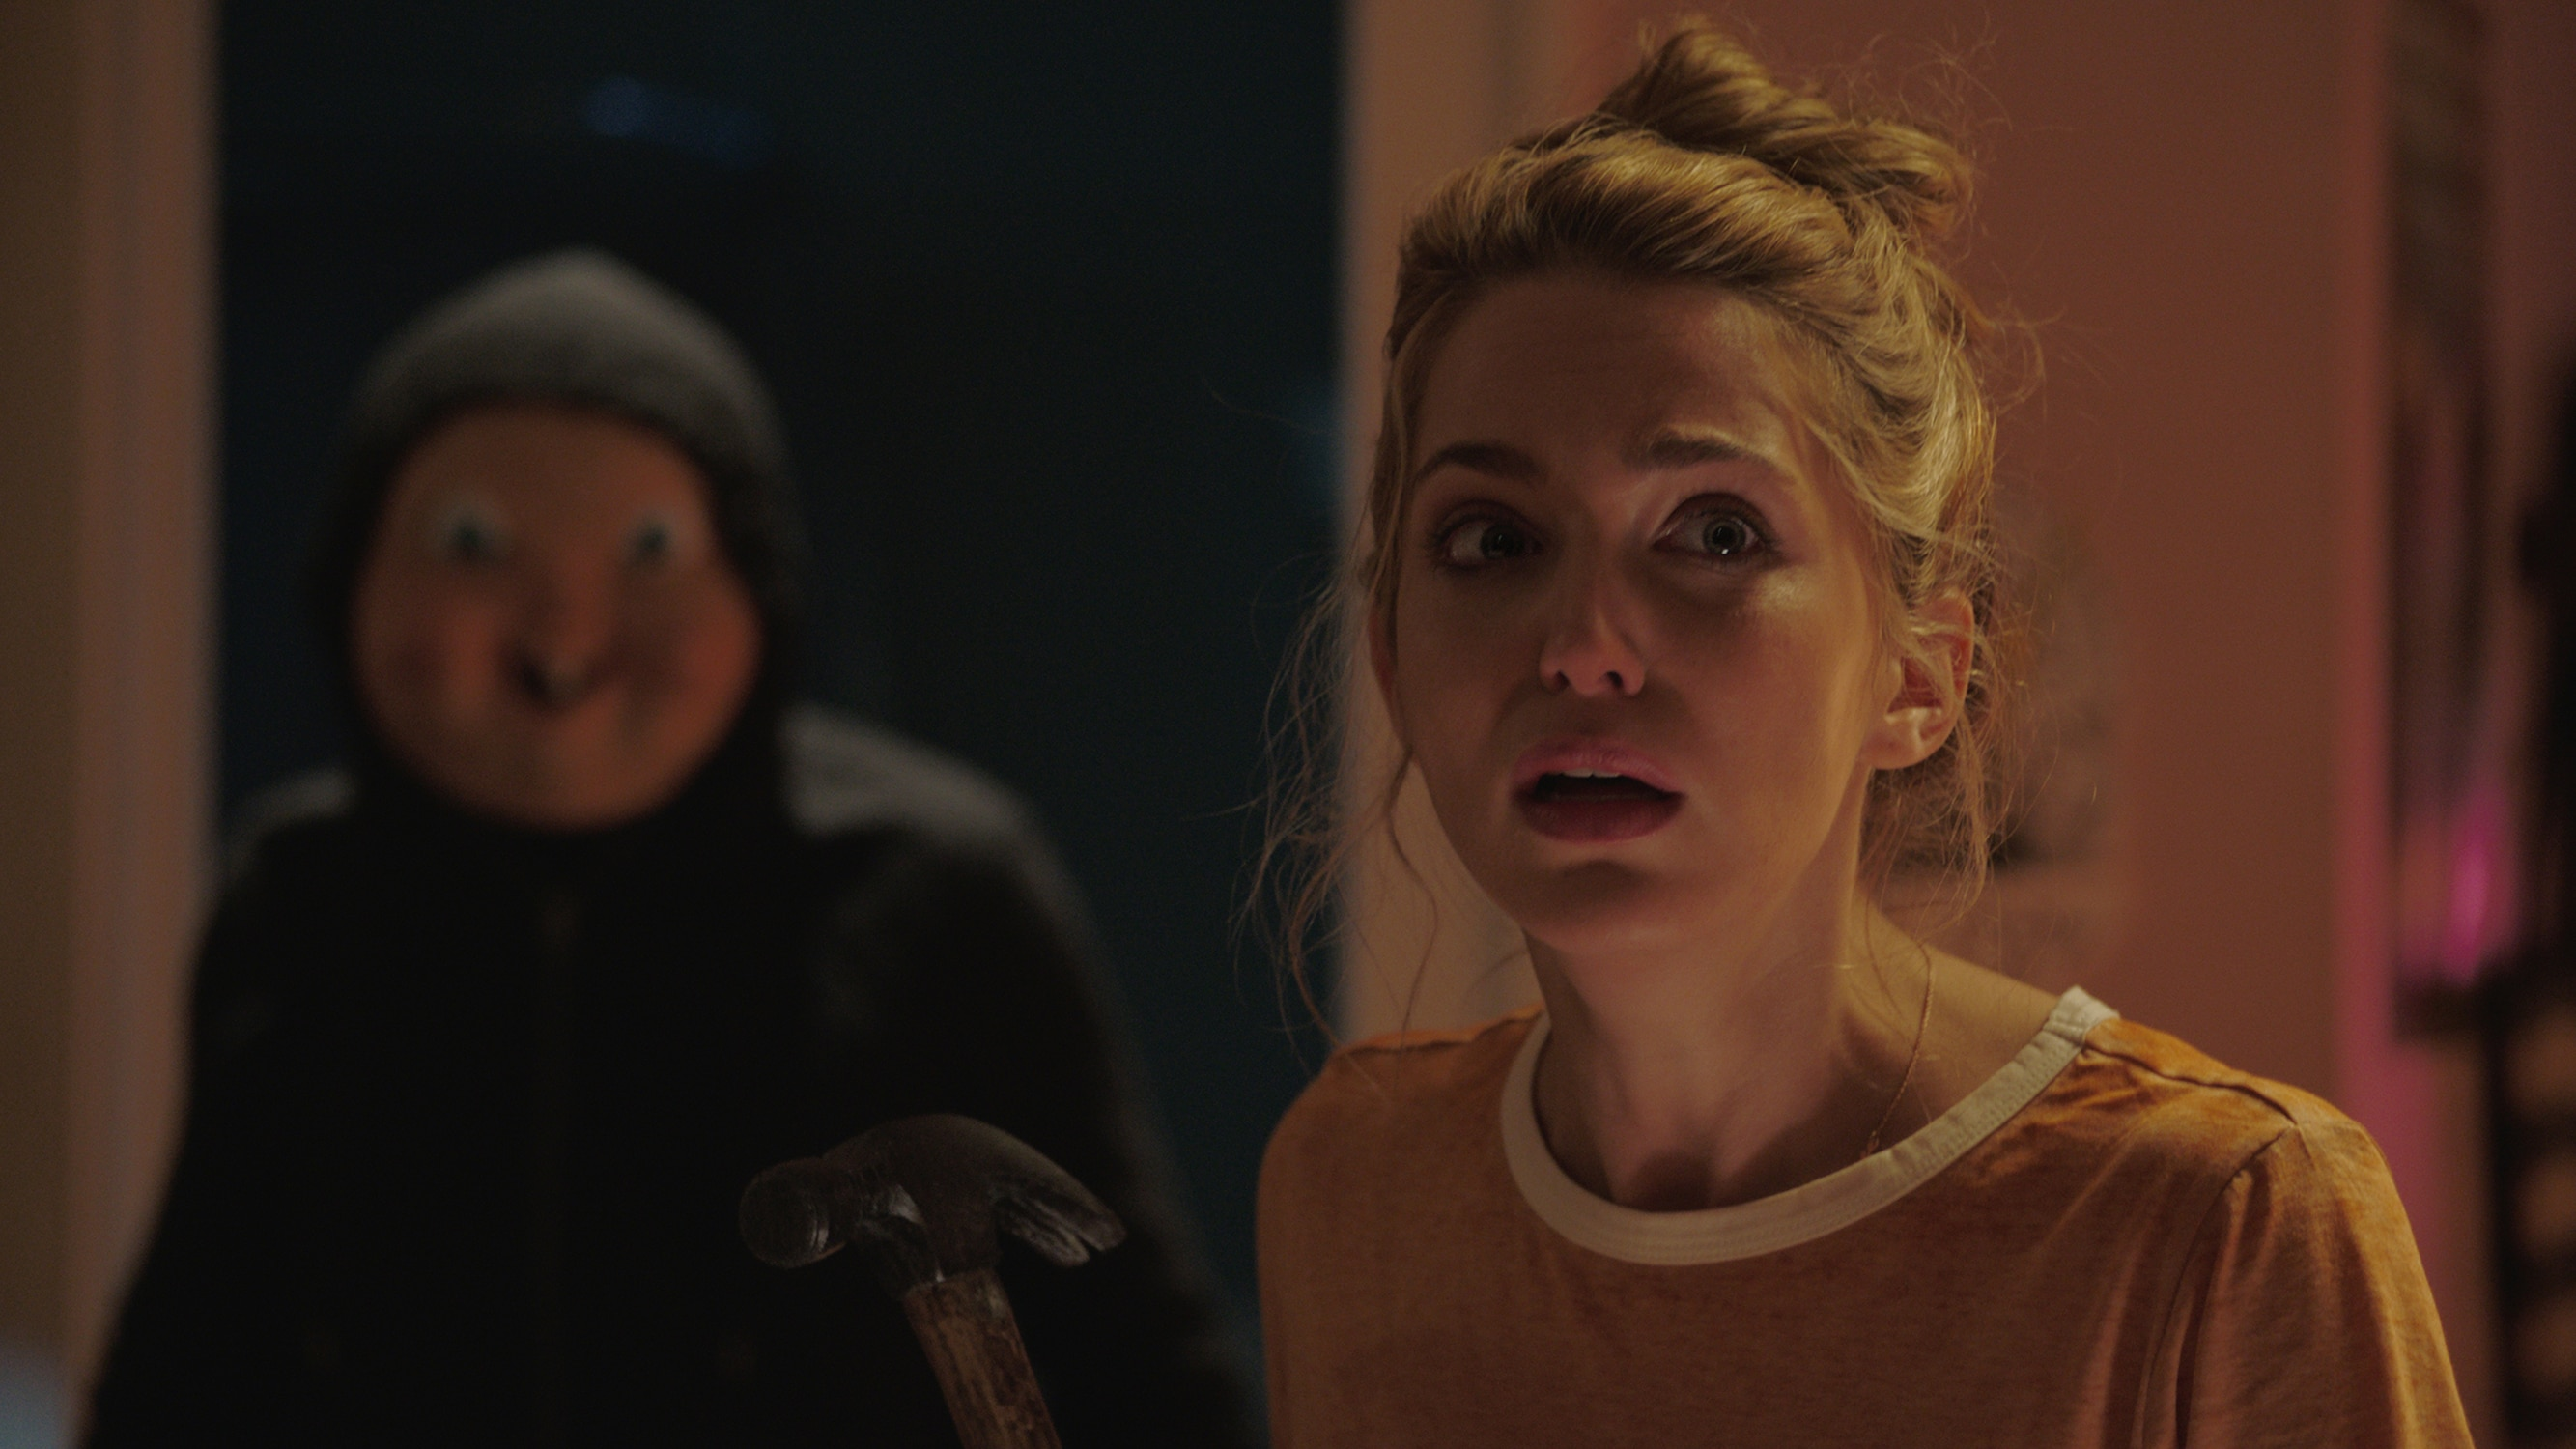 happydeathday4 - Exclusive: Tony Gardner on The Dollhouse, the Horror Family, and Happy Death Day